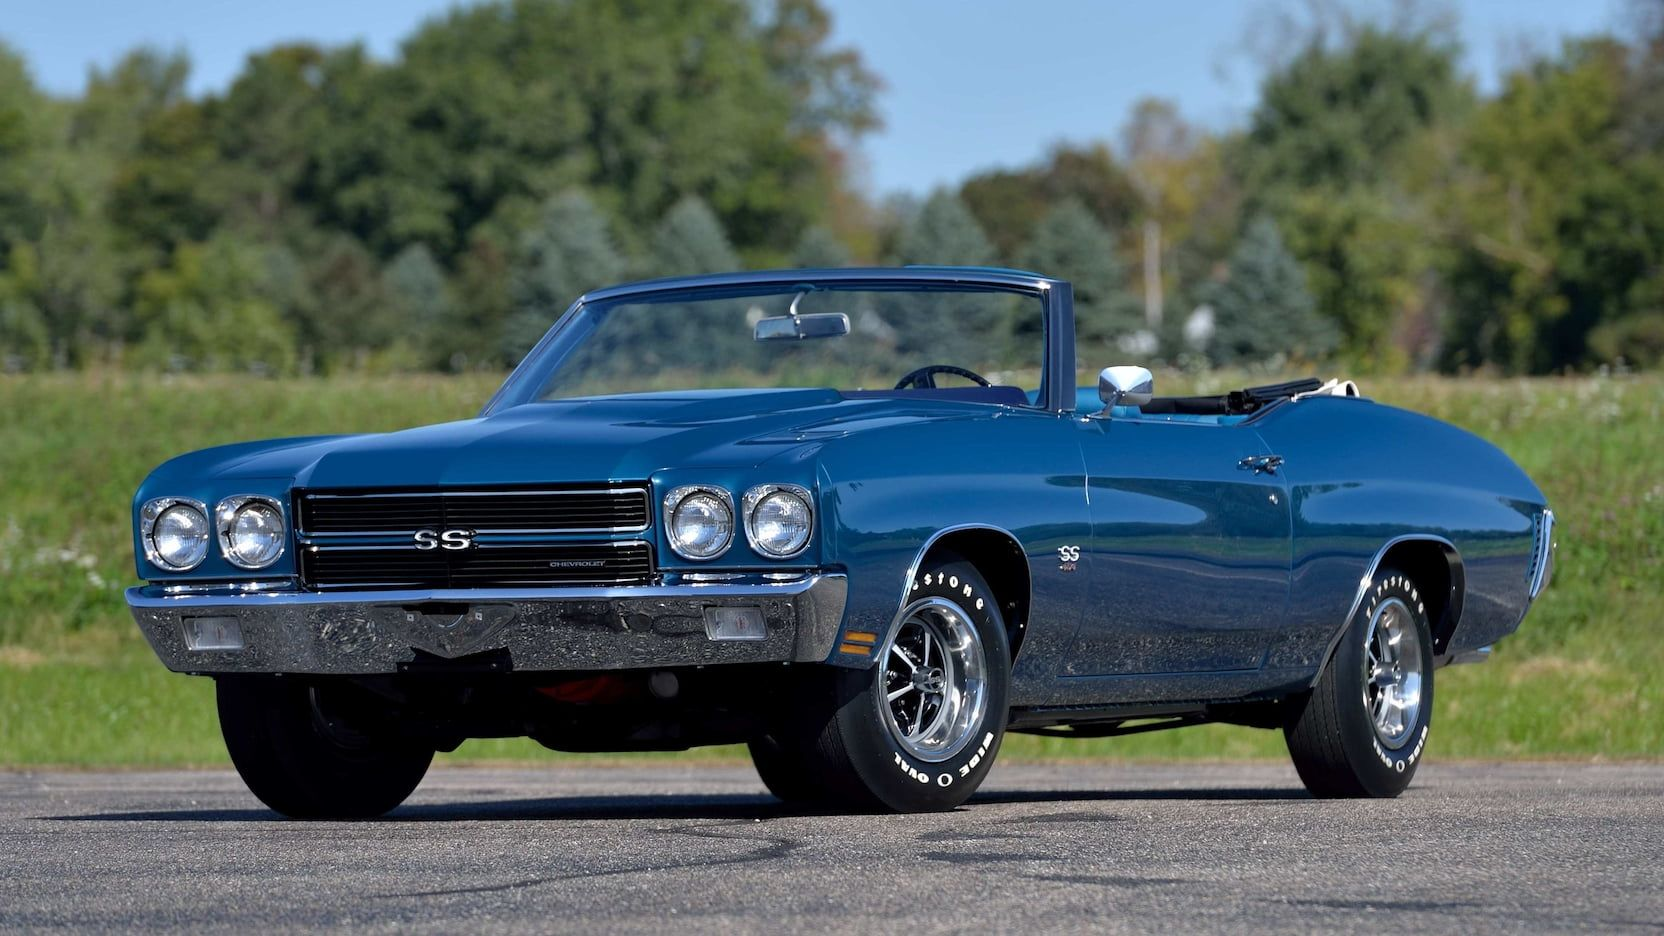 1970 Chevrolet Chevelle LS6 Convertible F143 Kissimmee